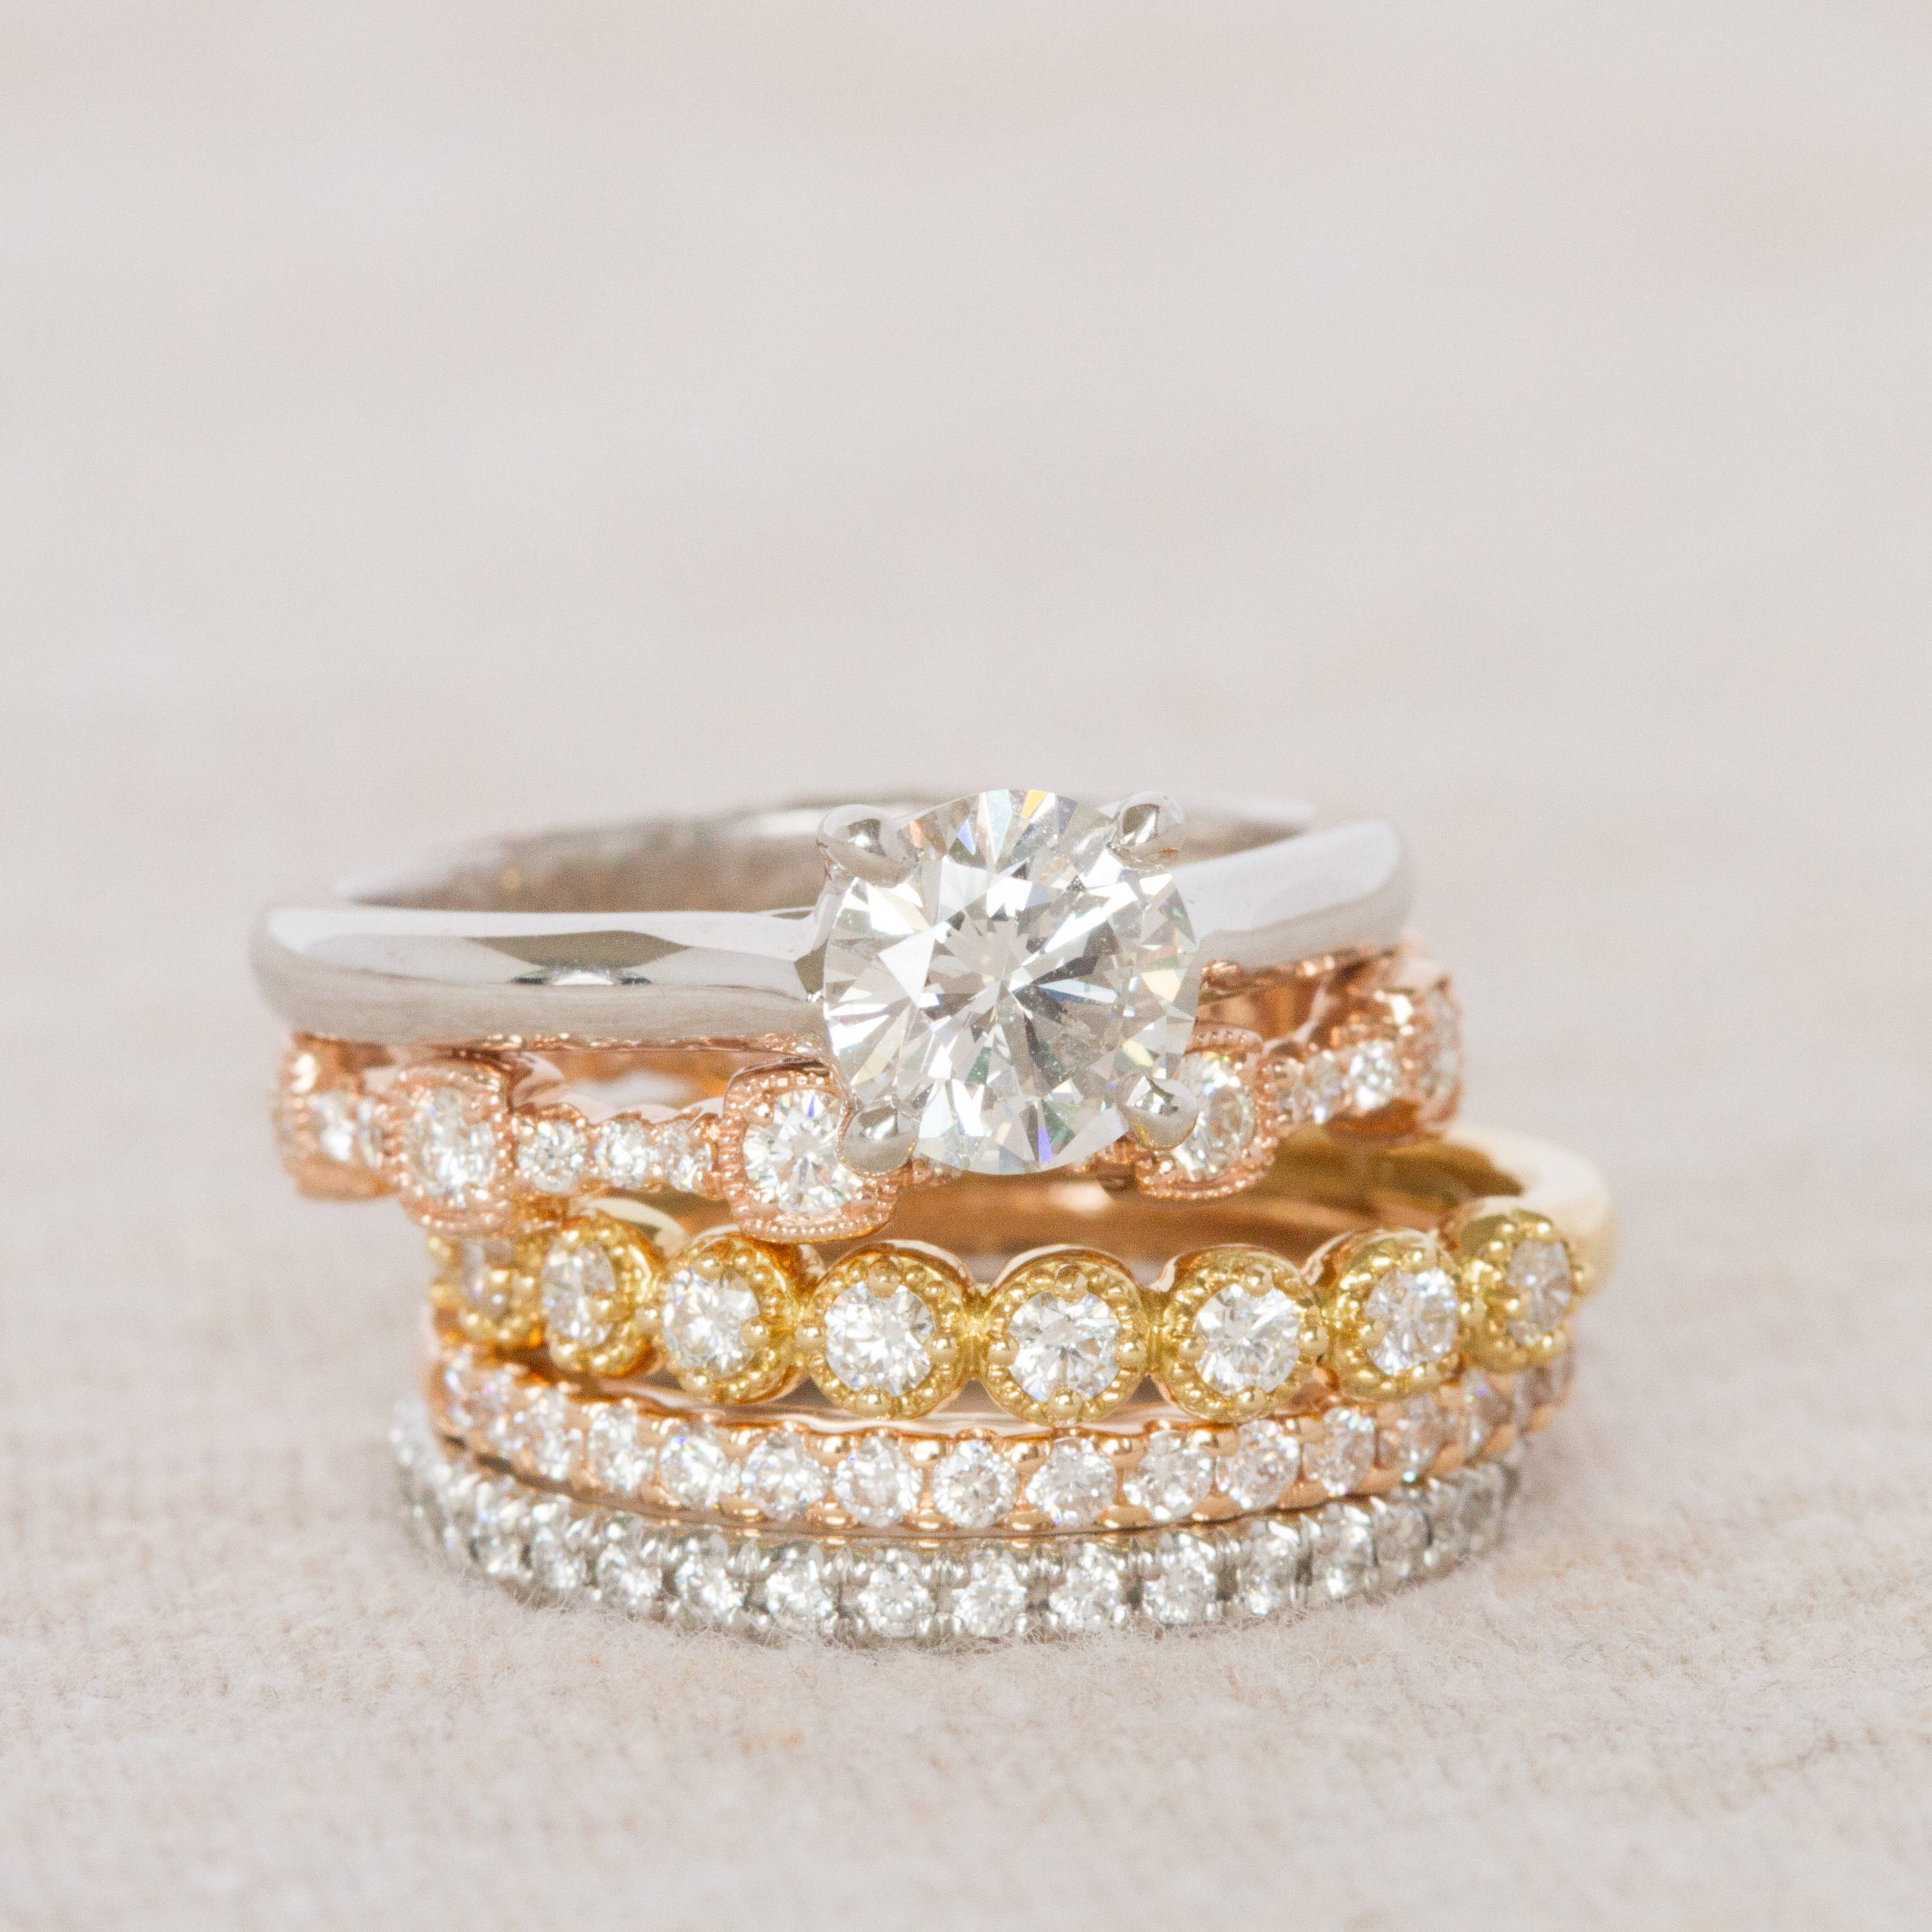 Schiffman's Engagement Rings and Wedding Bands